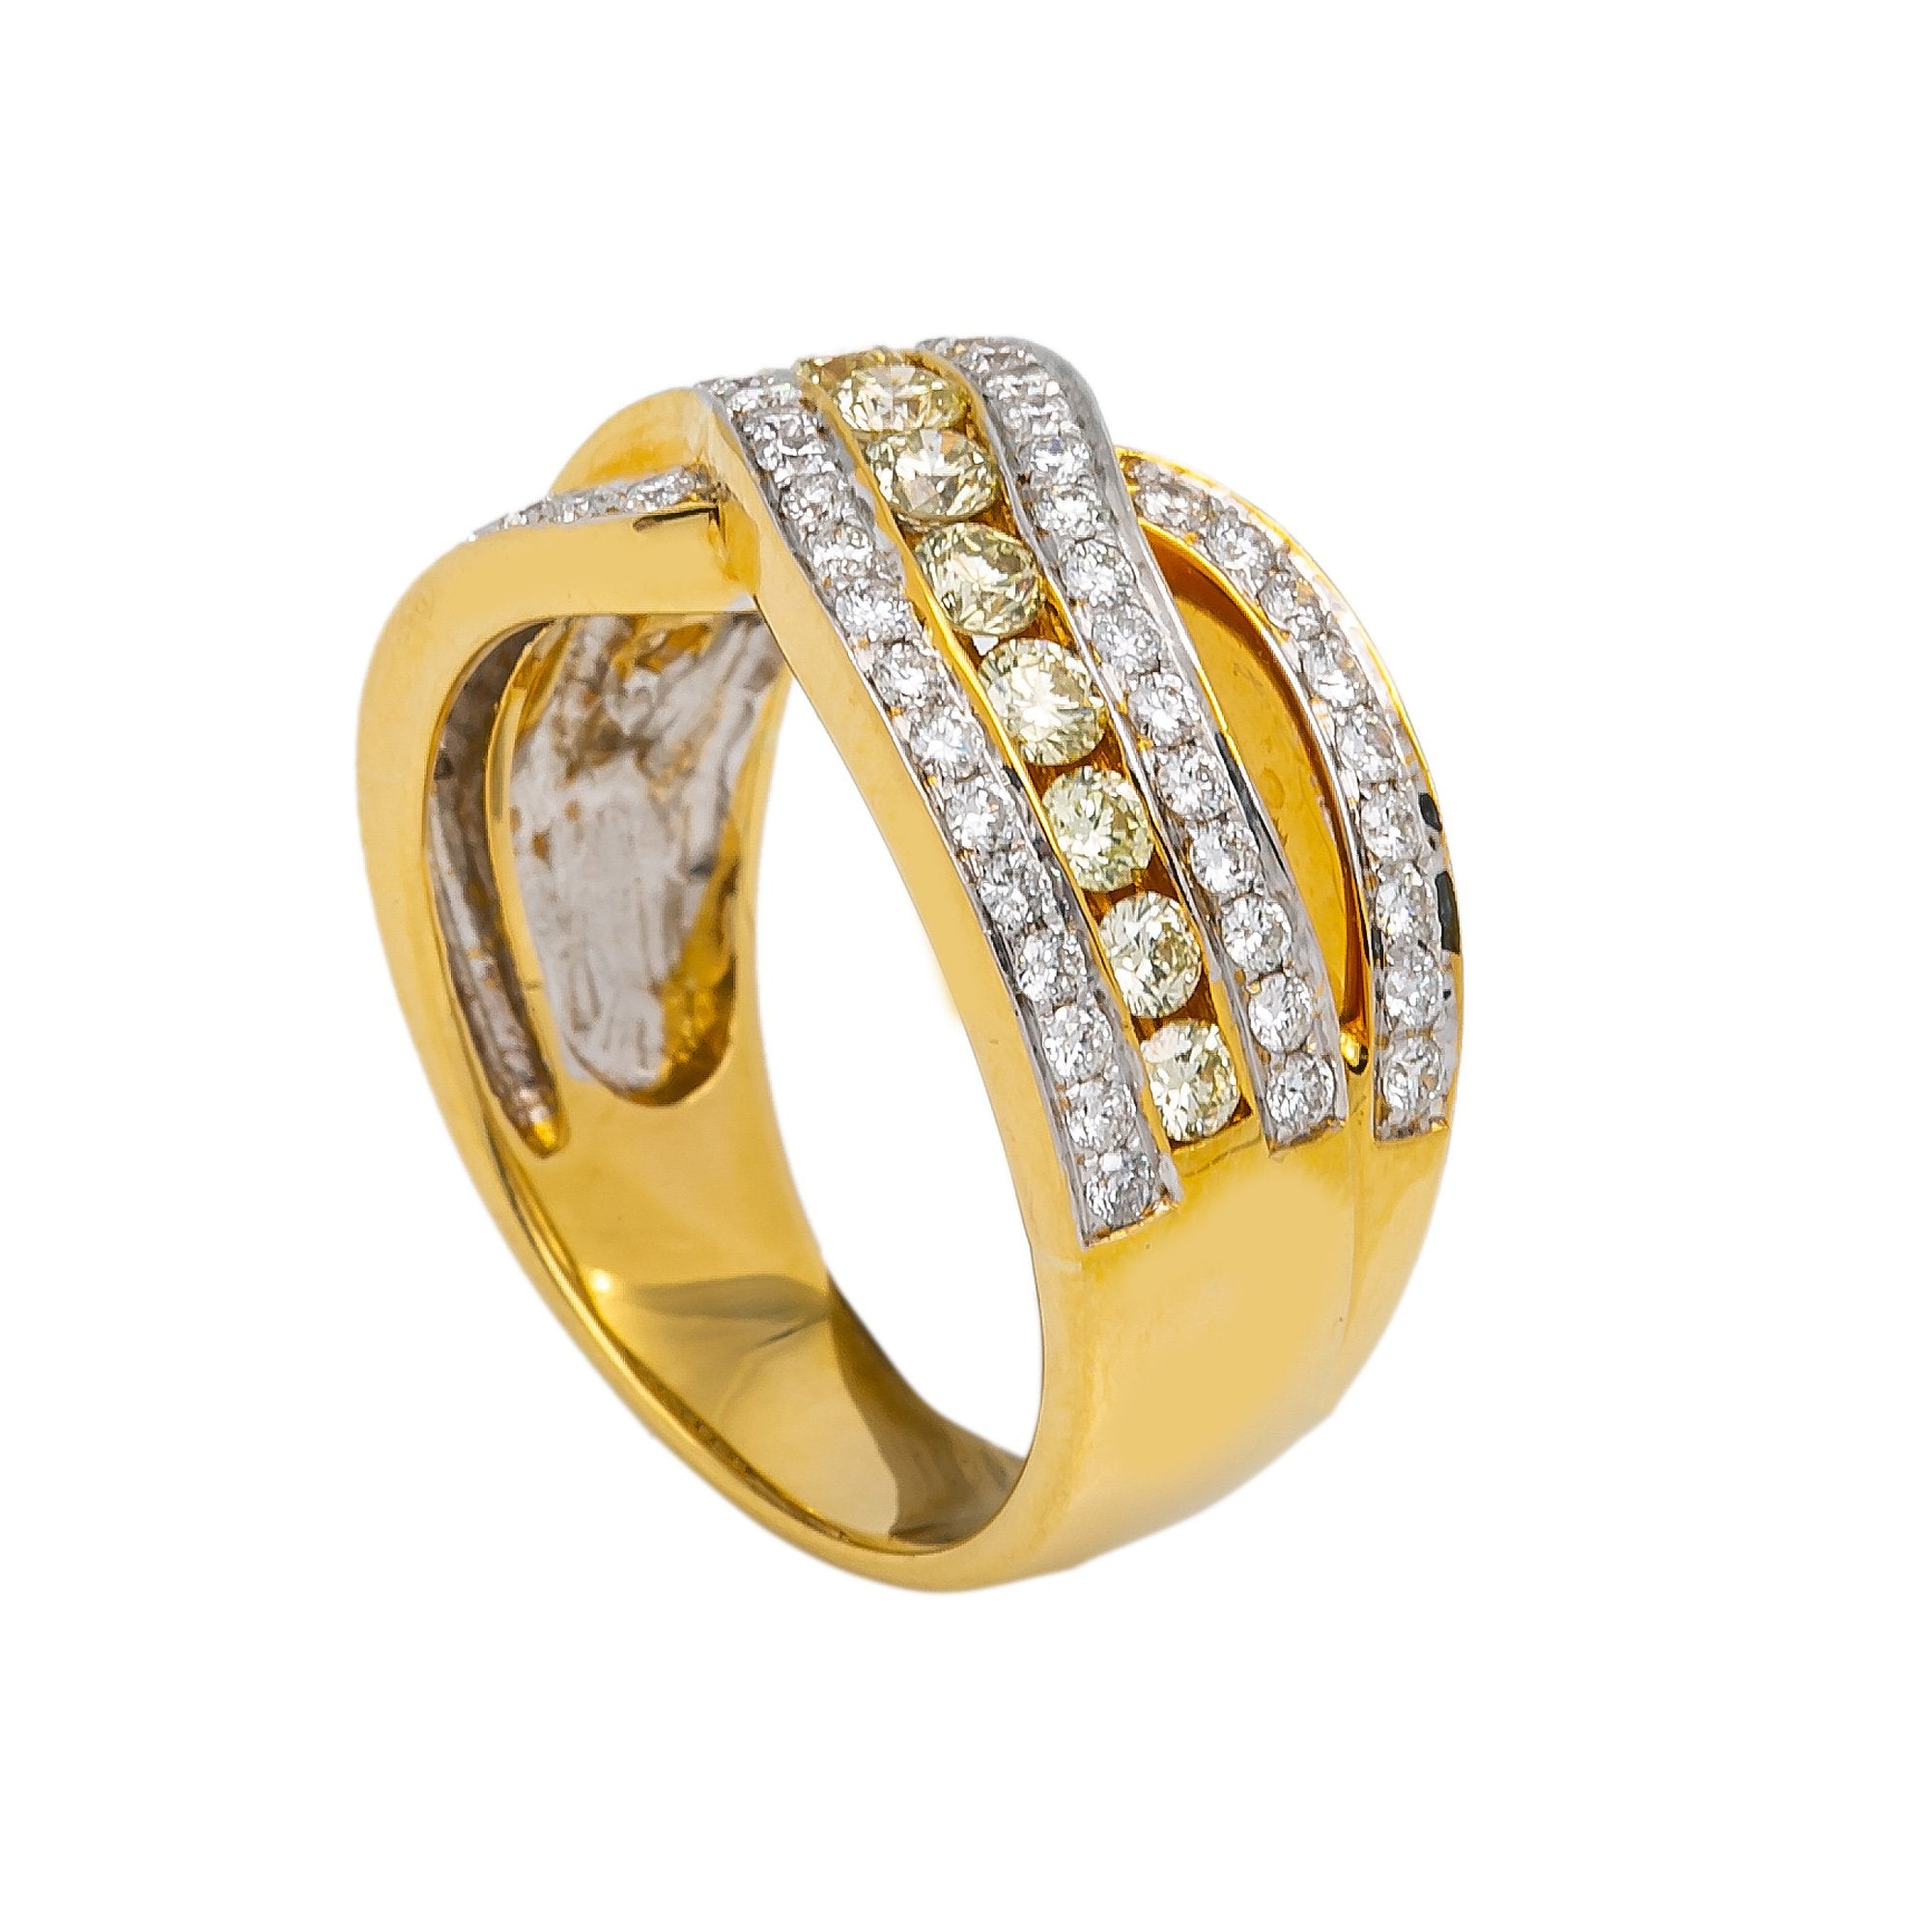 LADIES 18K YELLOW GOLD HAND RING WITH 1.44 CT DIAMONDS